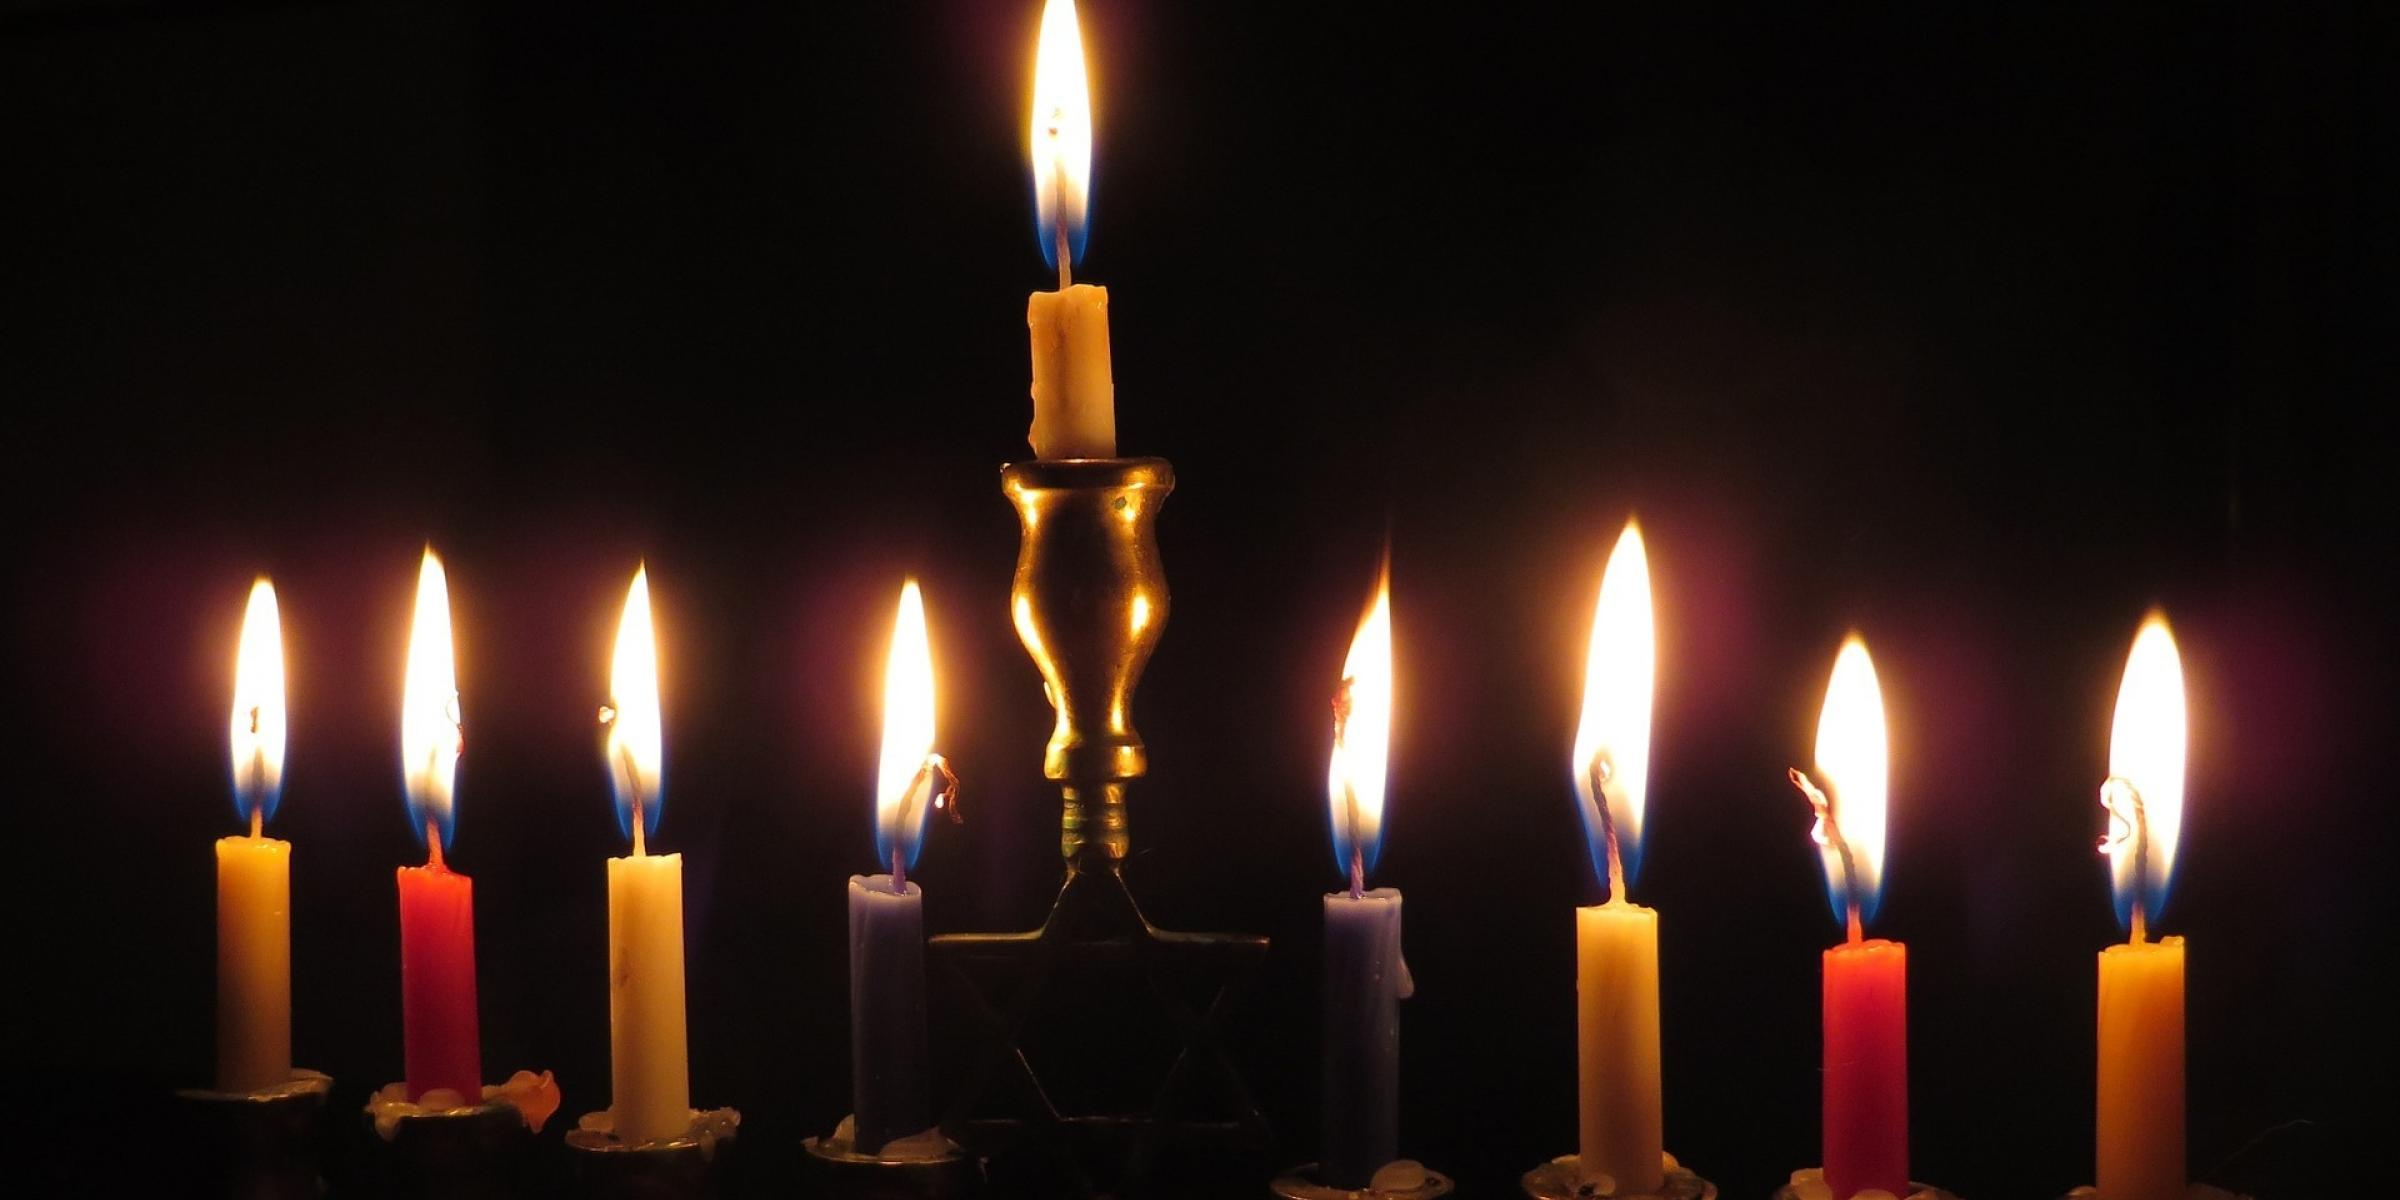 Nine lit menorah candles for a dementia-friendly Hanukkah